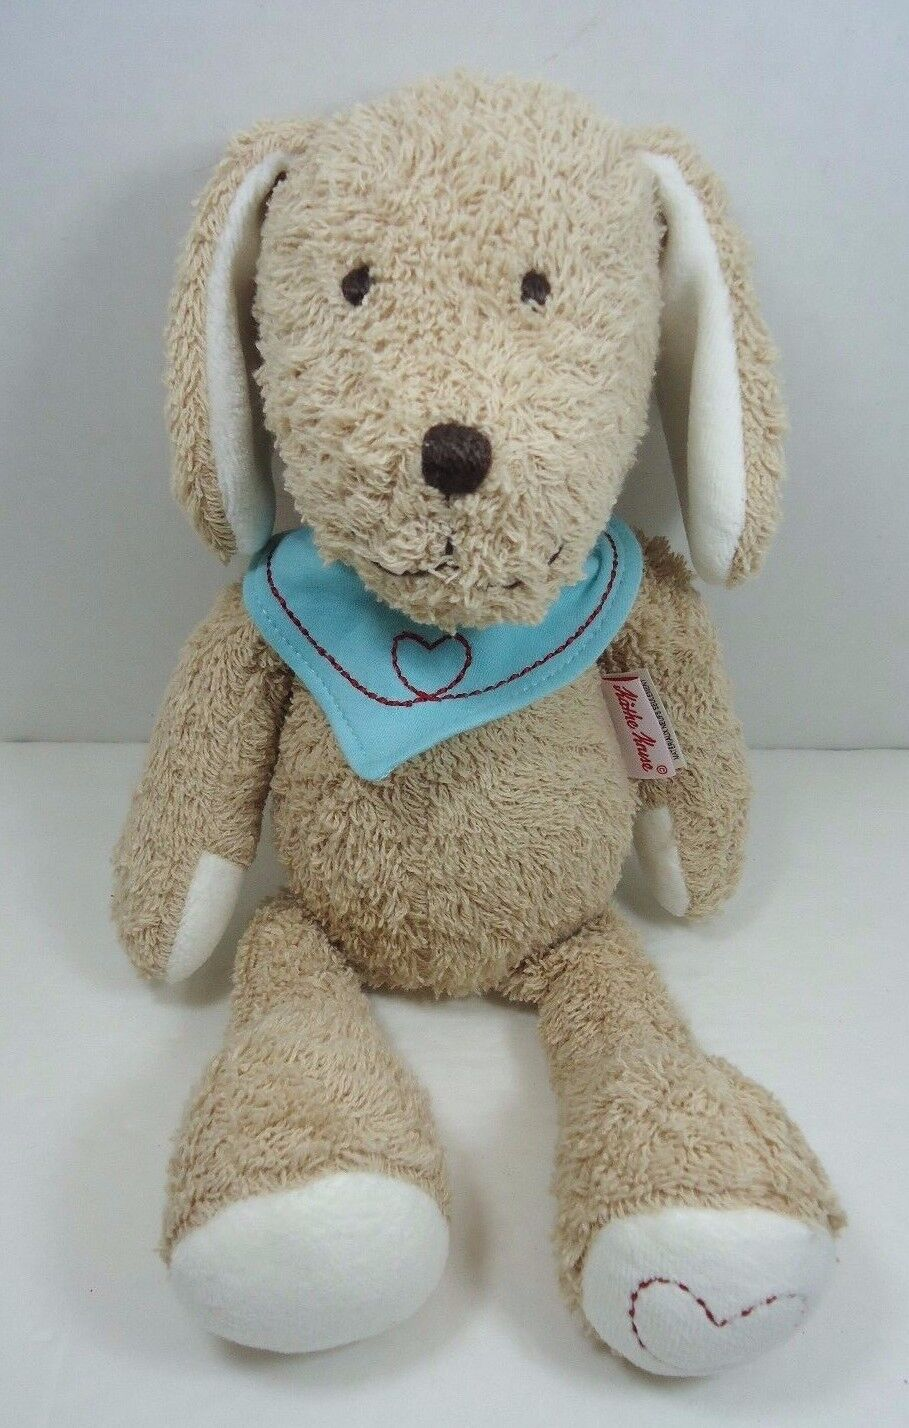 Sammy Dog Plush bluee Bandanna Heart On Foot Puppy Kathy Kathe Kruse Plush 13